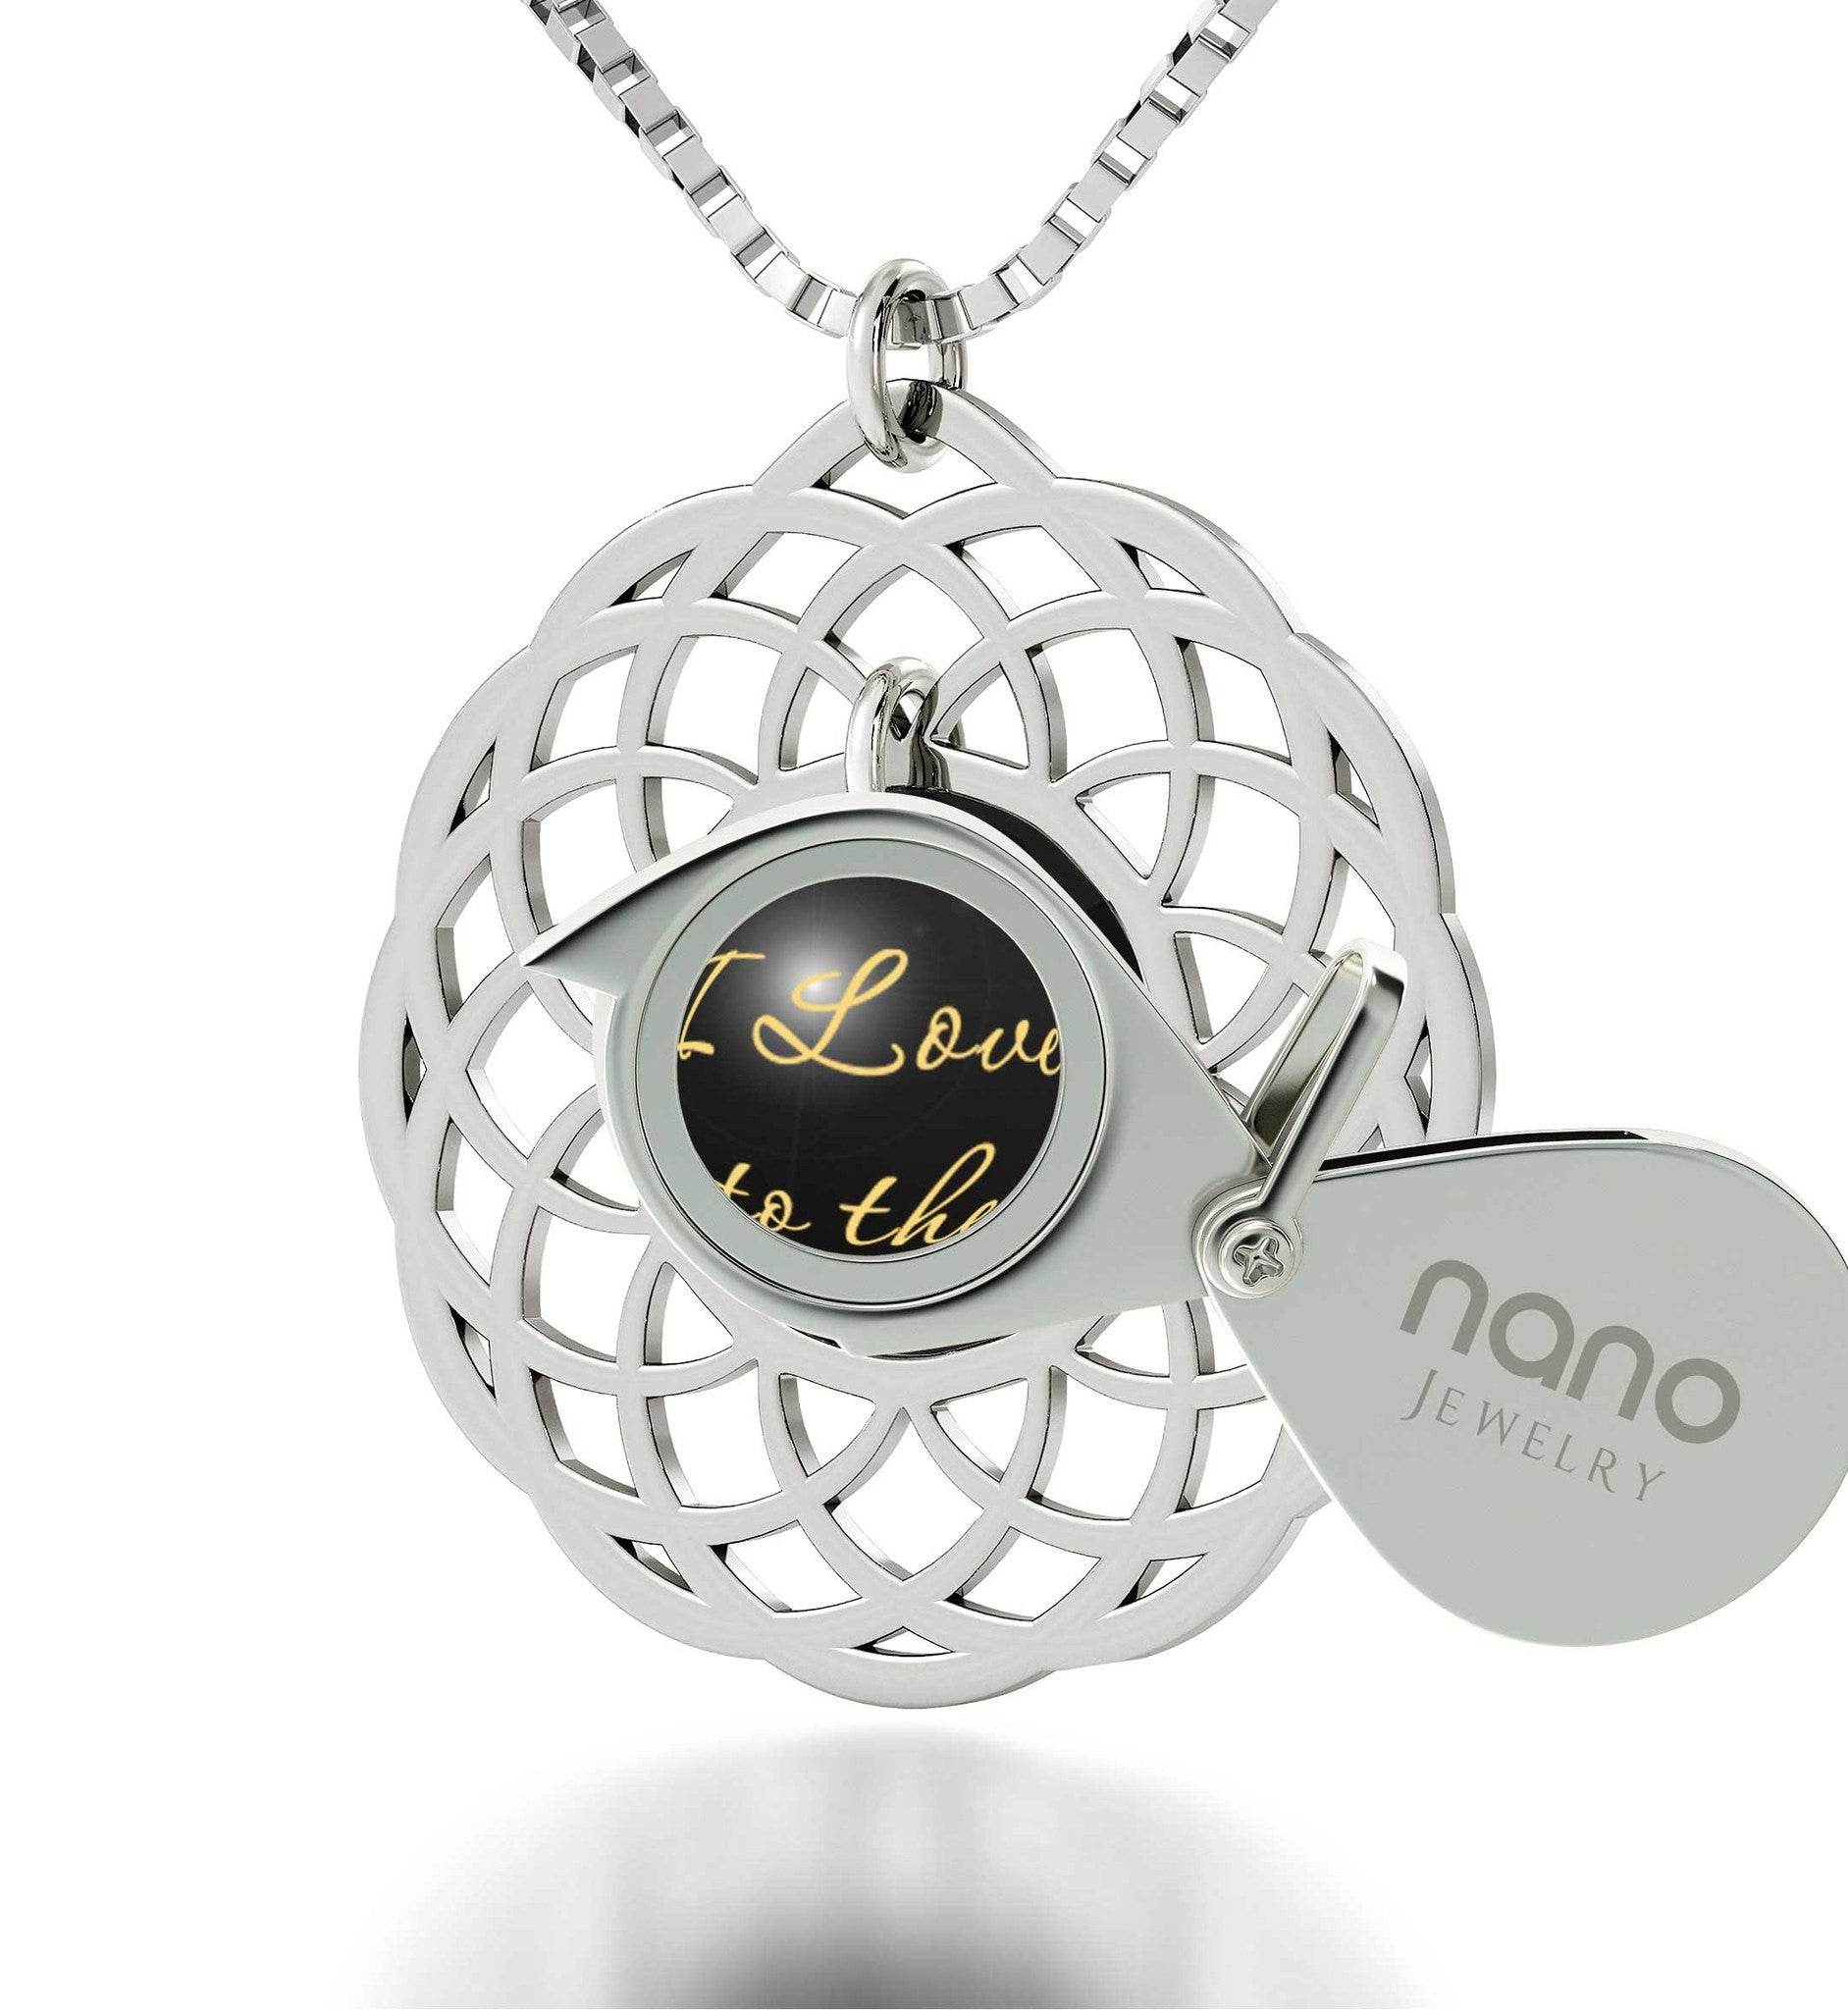 Valentine's Day Gift Ideas for Girlfriend,Sterling SilverMandala, 24k Imprint, Pure Romance Products, Nano Jewelry